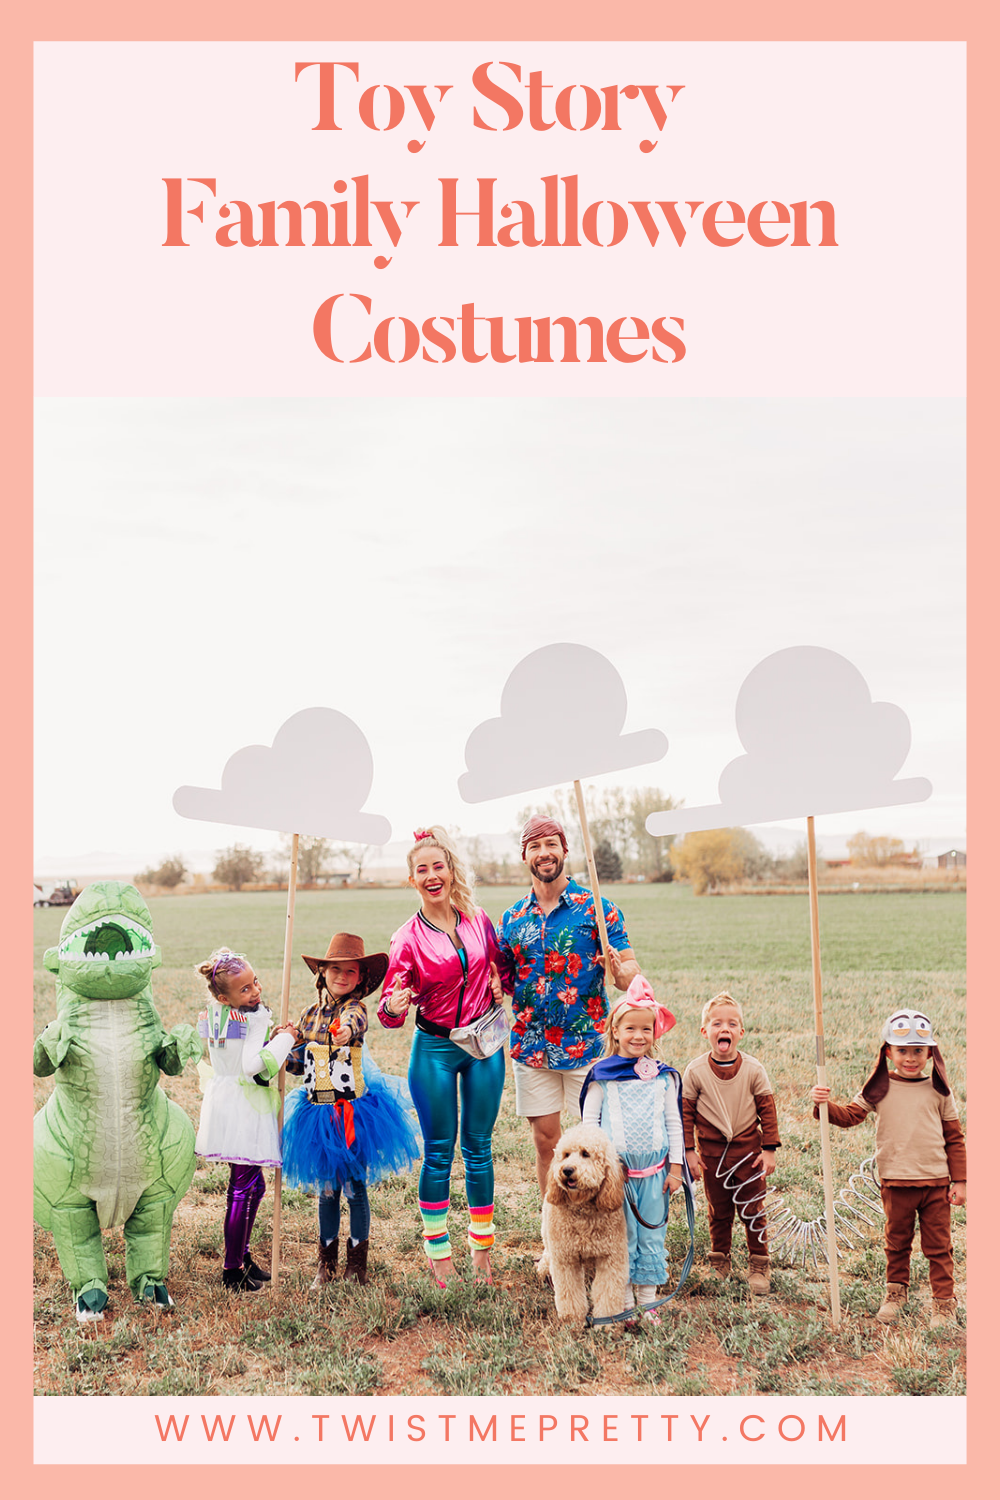 Toy Story Family Halloween Costumes www.twistmepretty.com